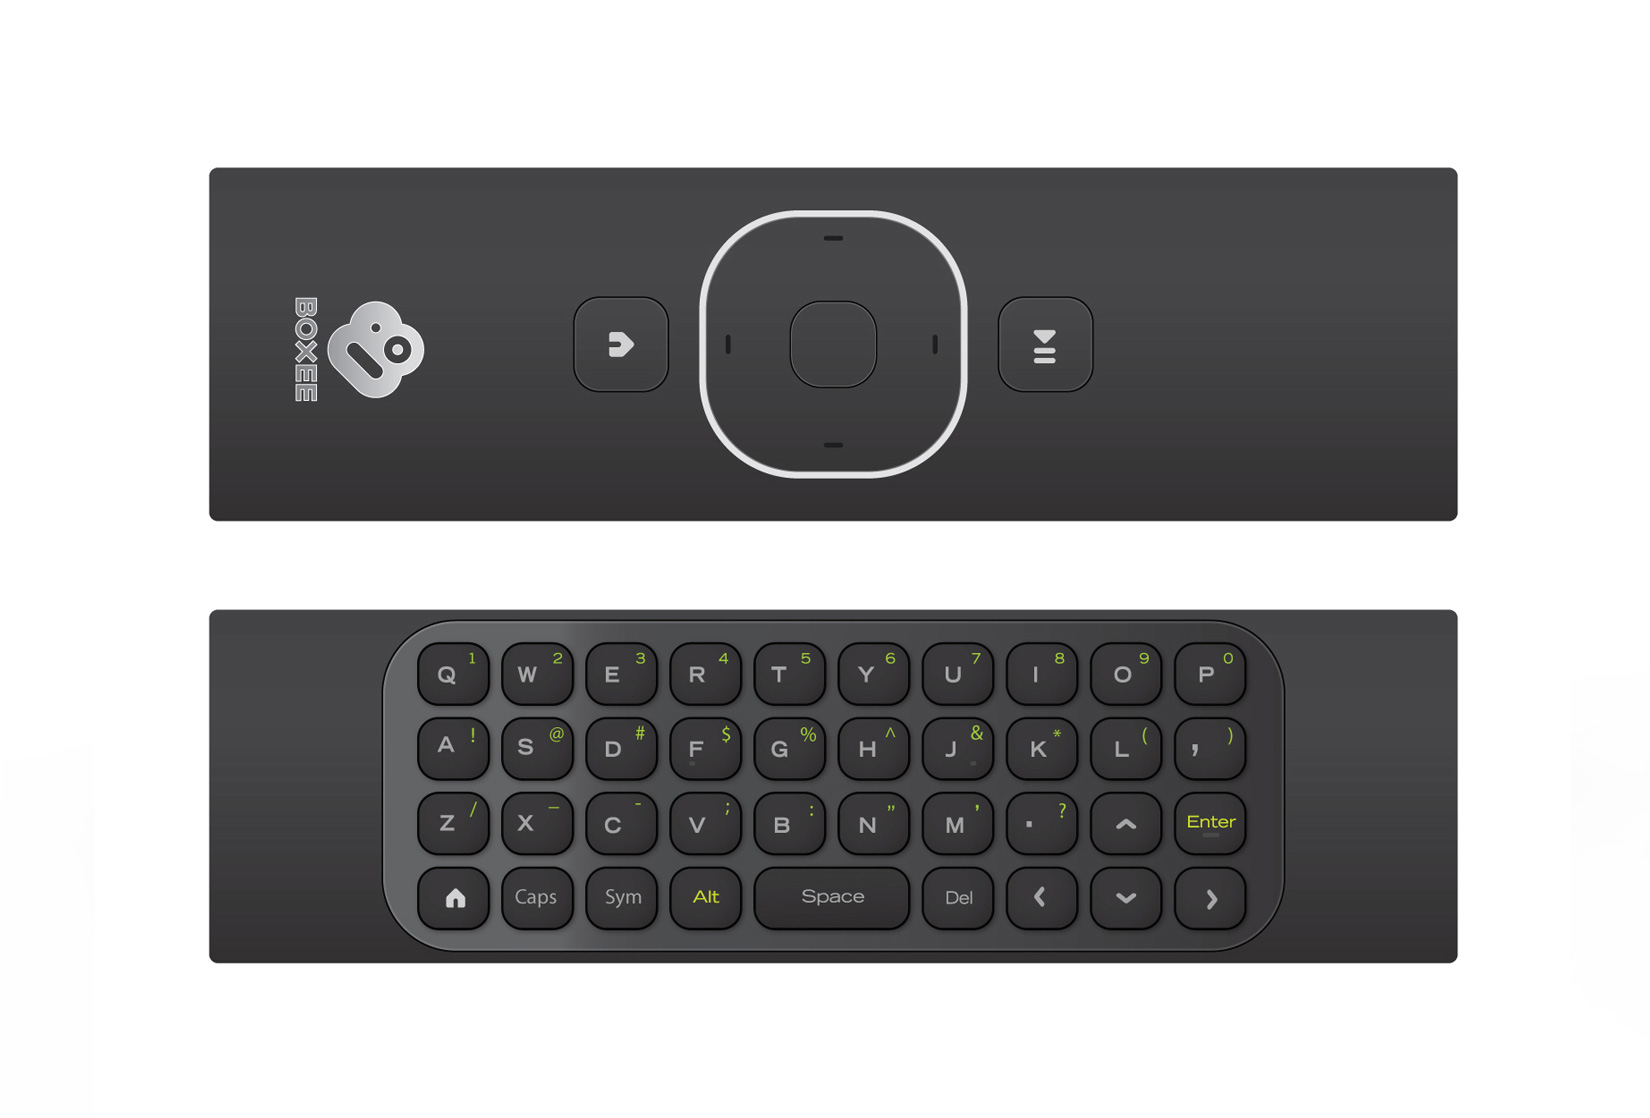 D-Link's Boxee Box Remote